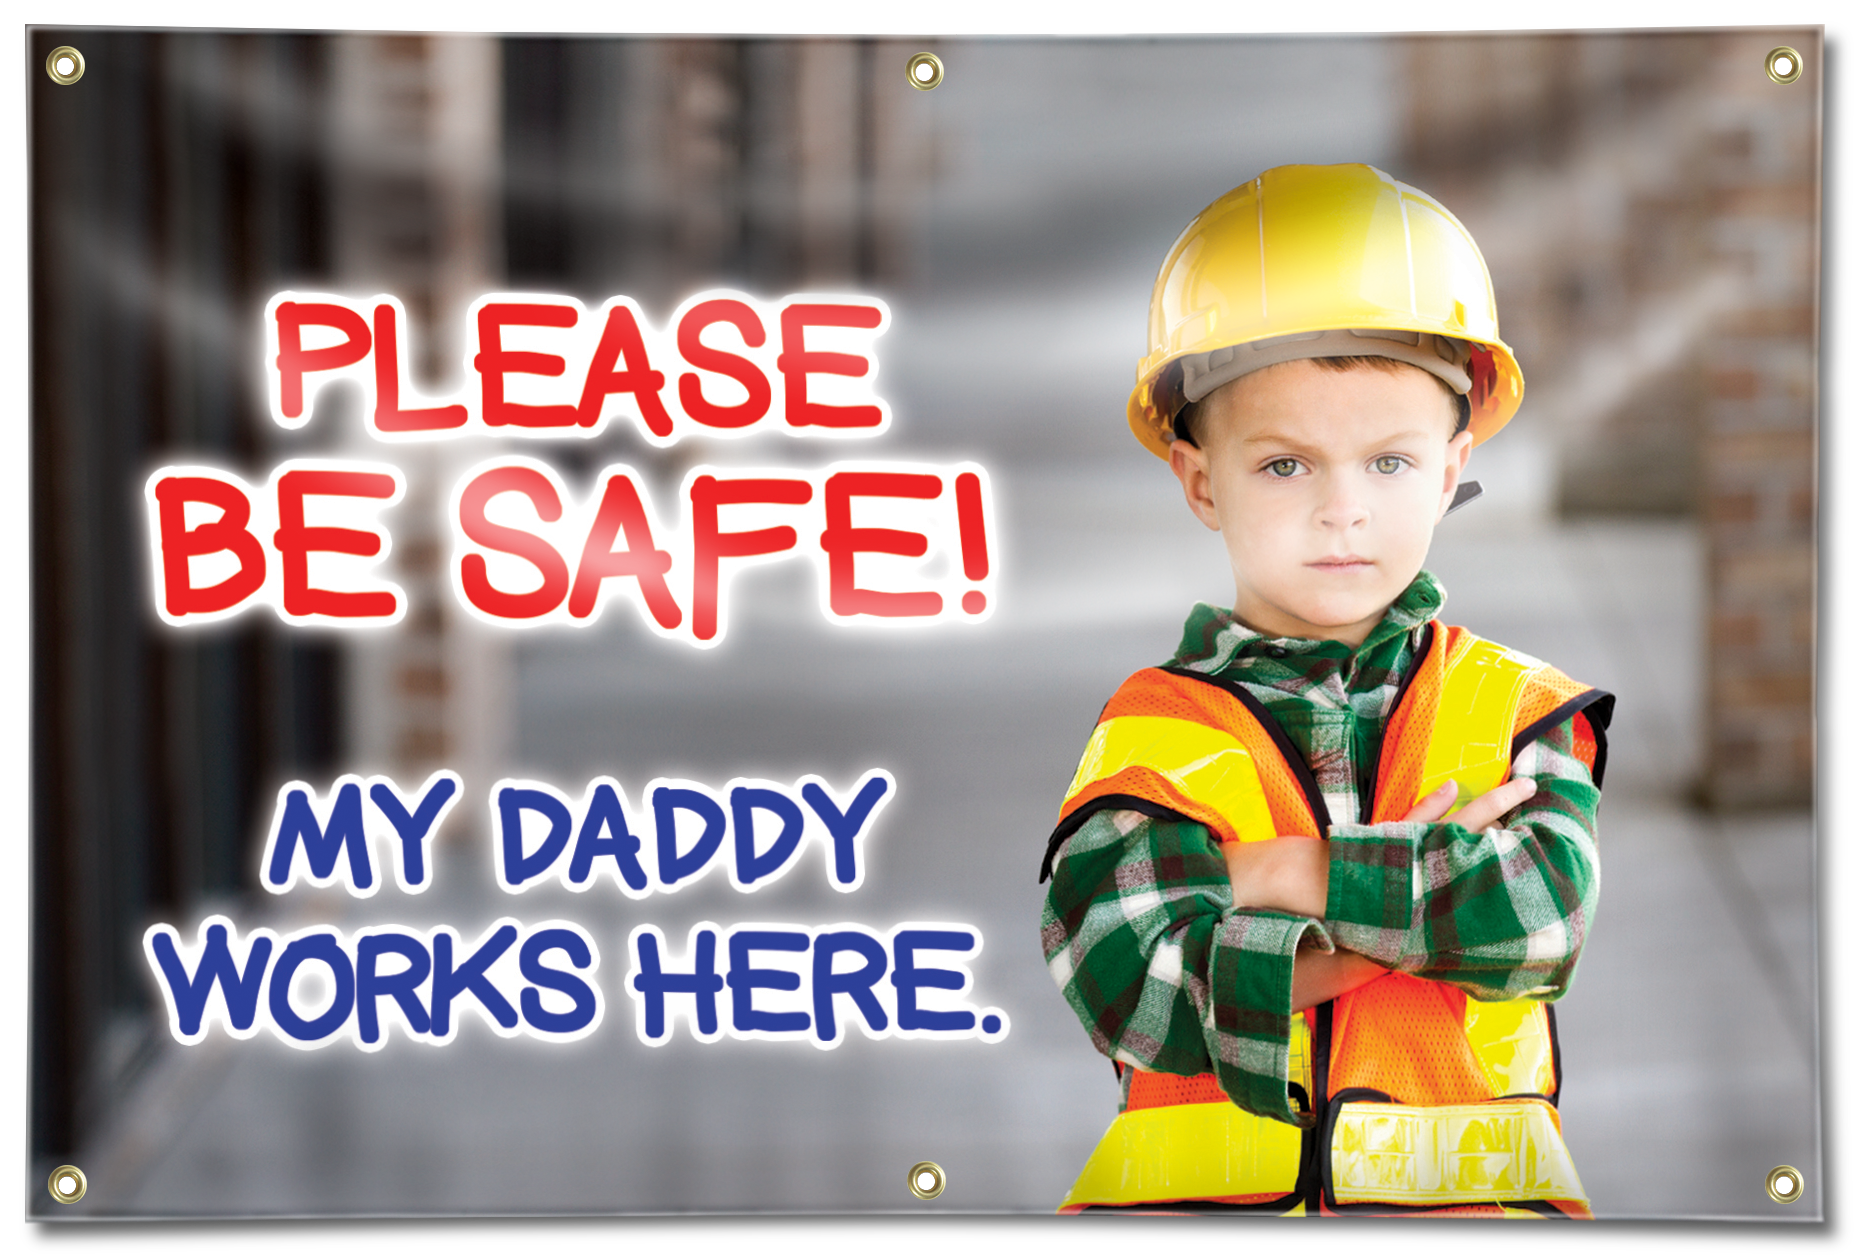 Daddy works here BANNER.png